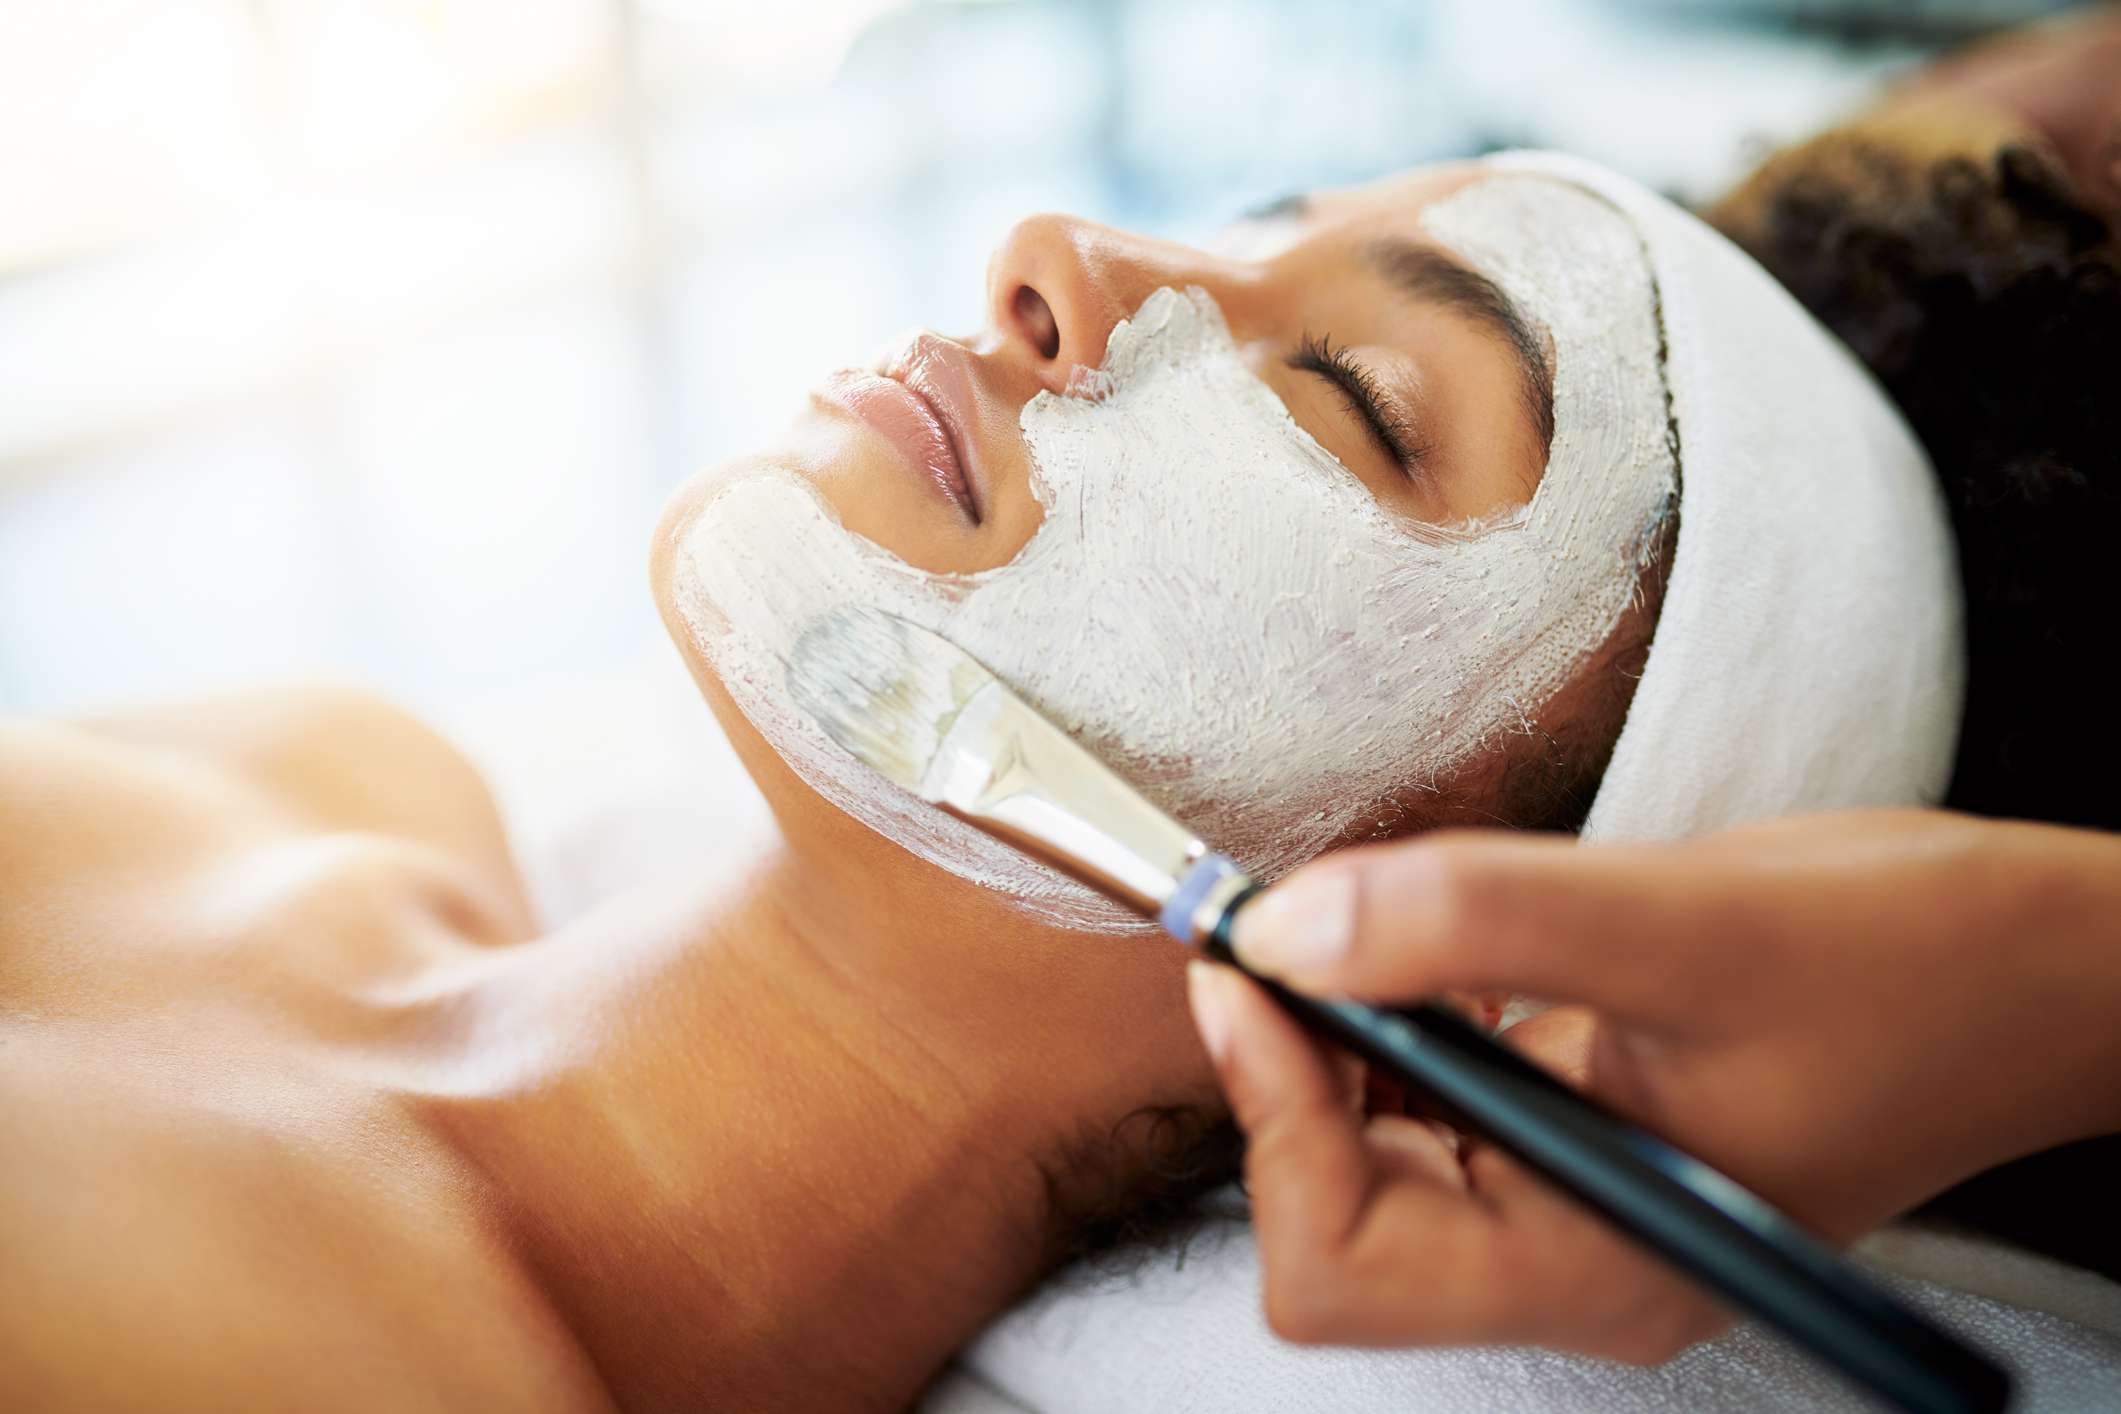 Spa Services include Facial Treatments, Lash Extensions, Microdermabrasion, HD Brow Lamination